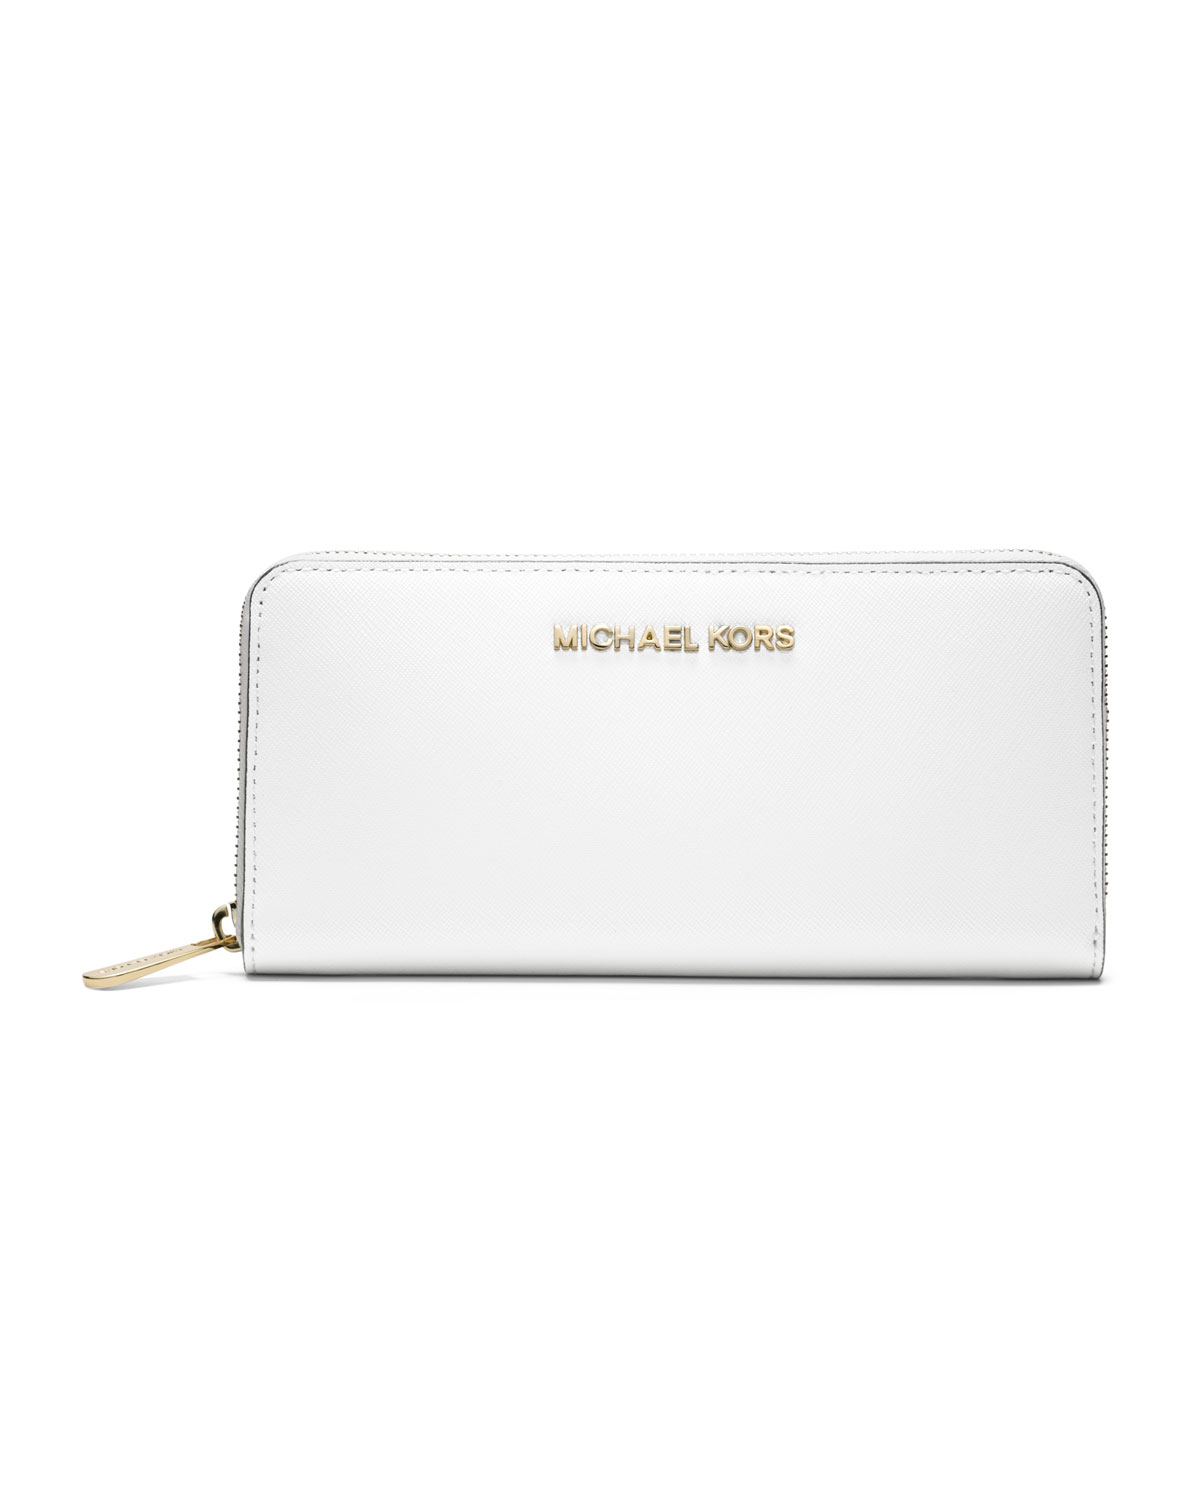 be88b994beaf Michael Kors White Wallets On Sale   Stanford Center for Opportunity ...